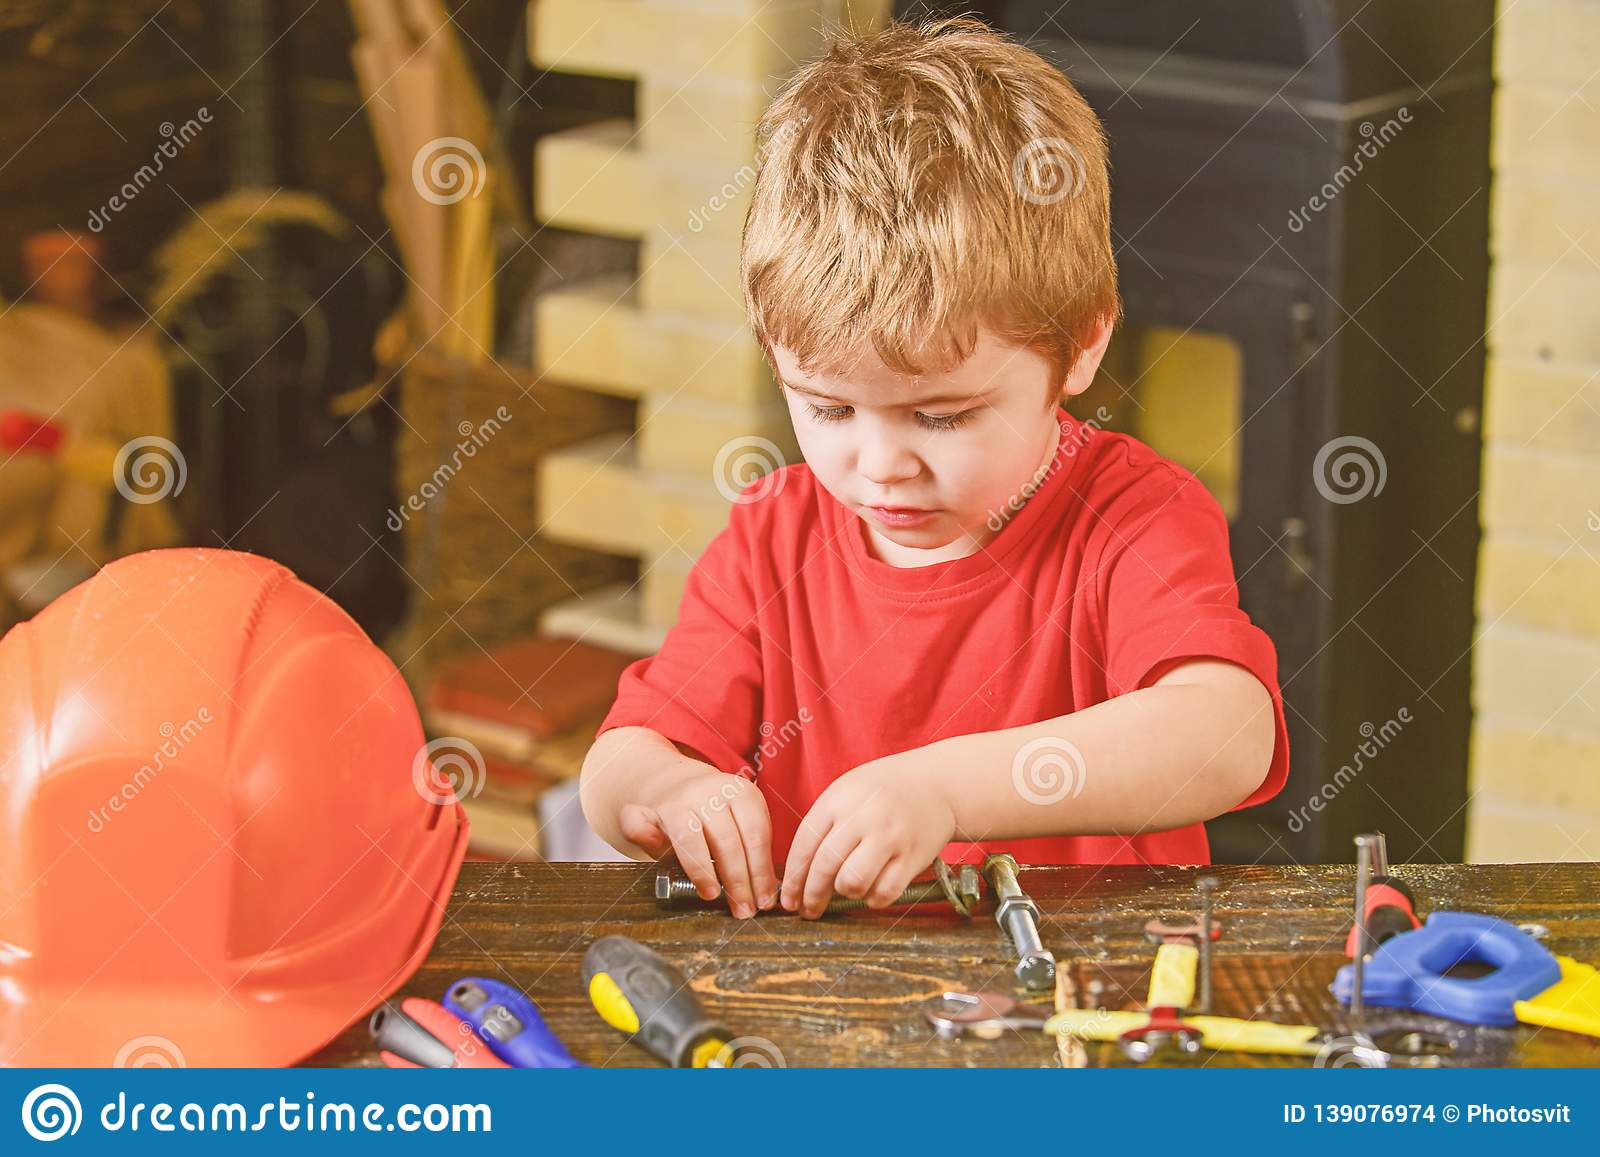 Kid fixing two metal details. Concentrated boy working with bolts. Preschooler helping in workshop